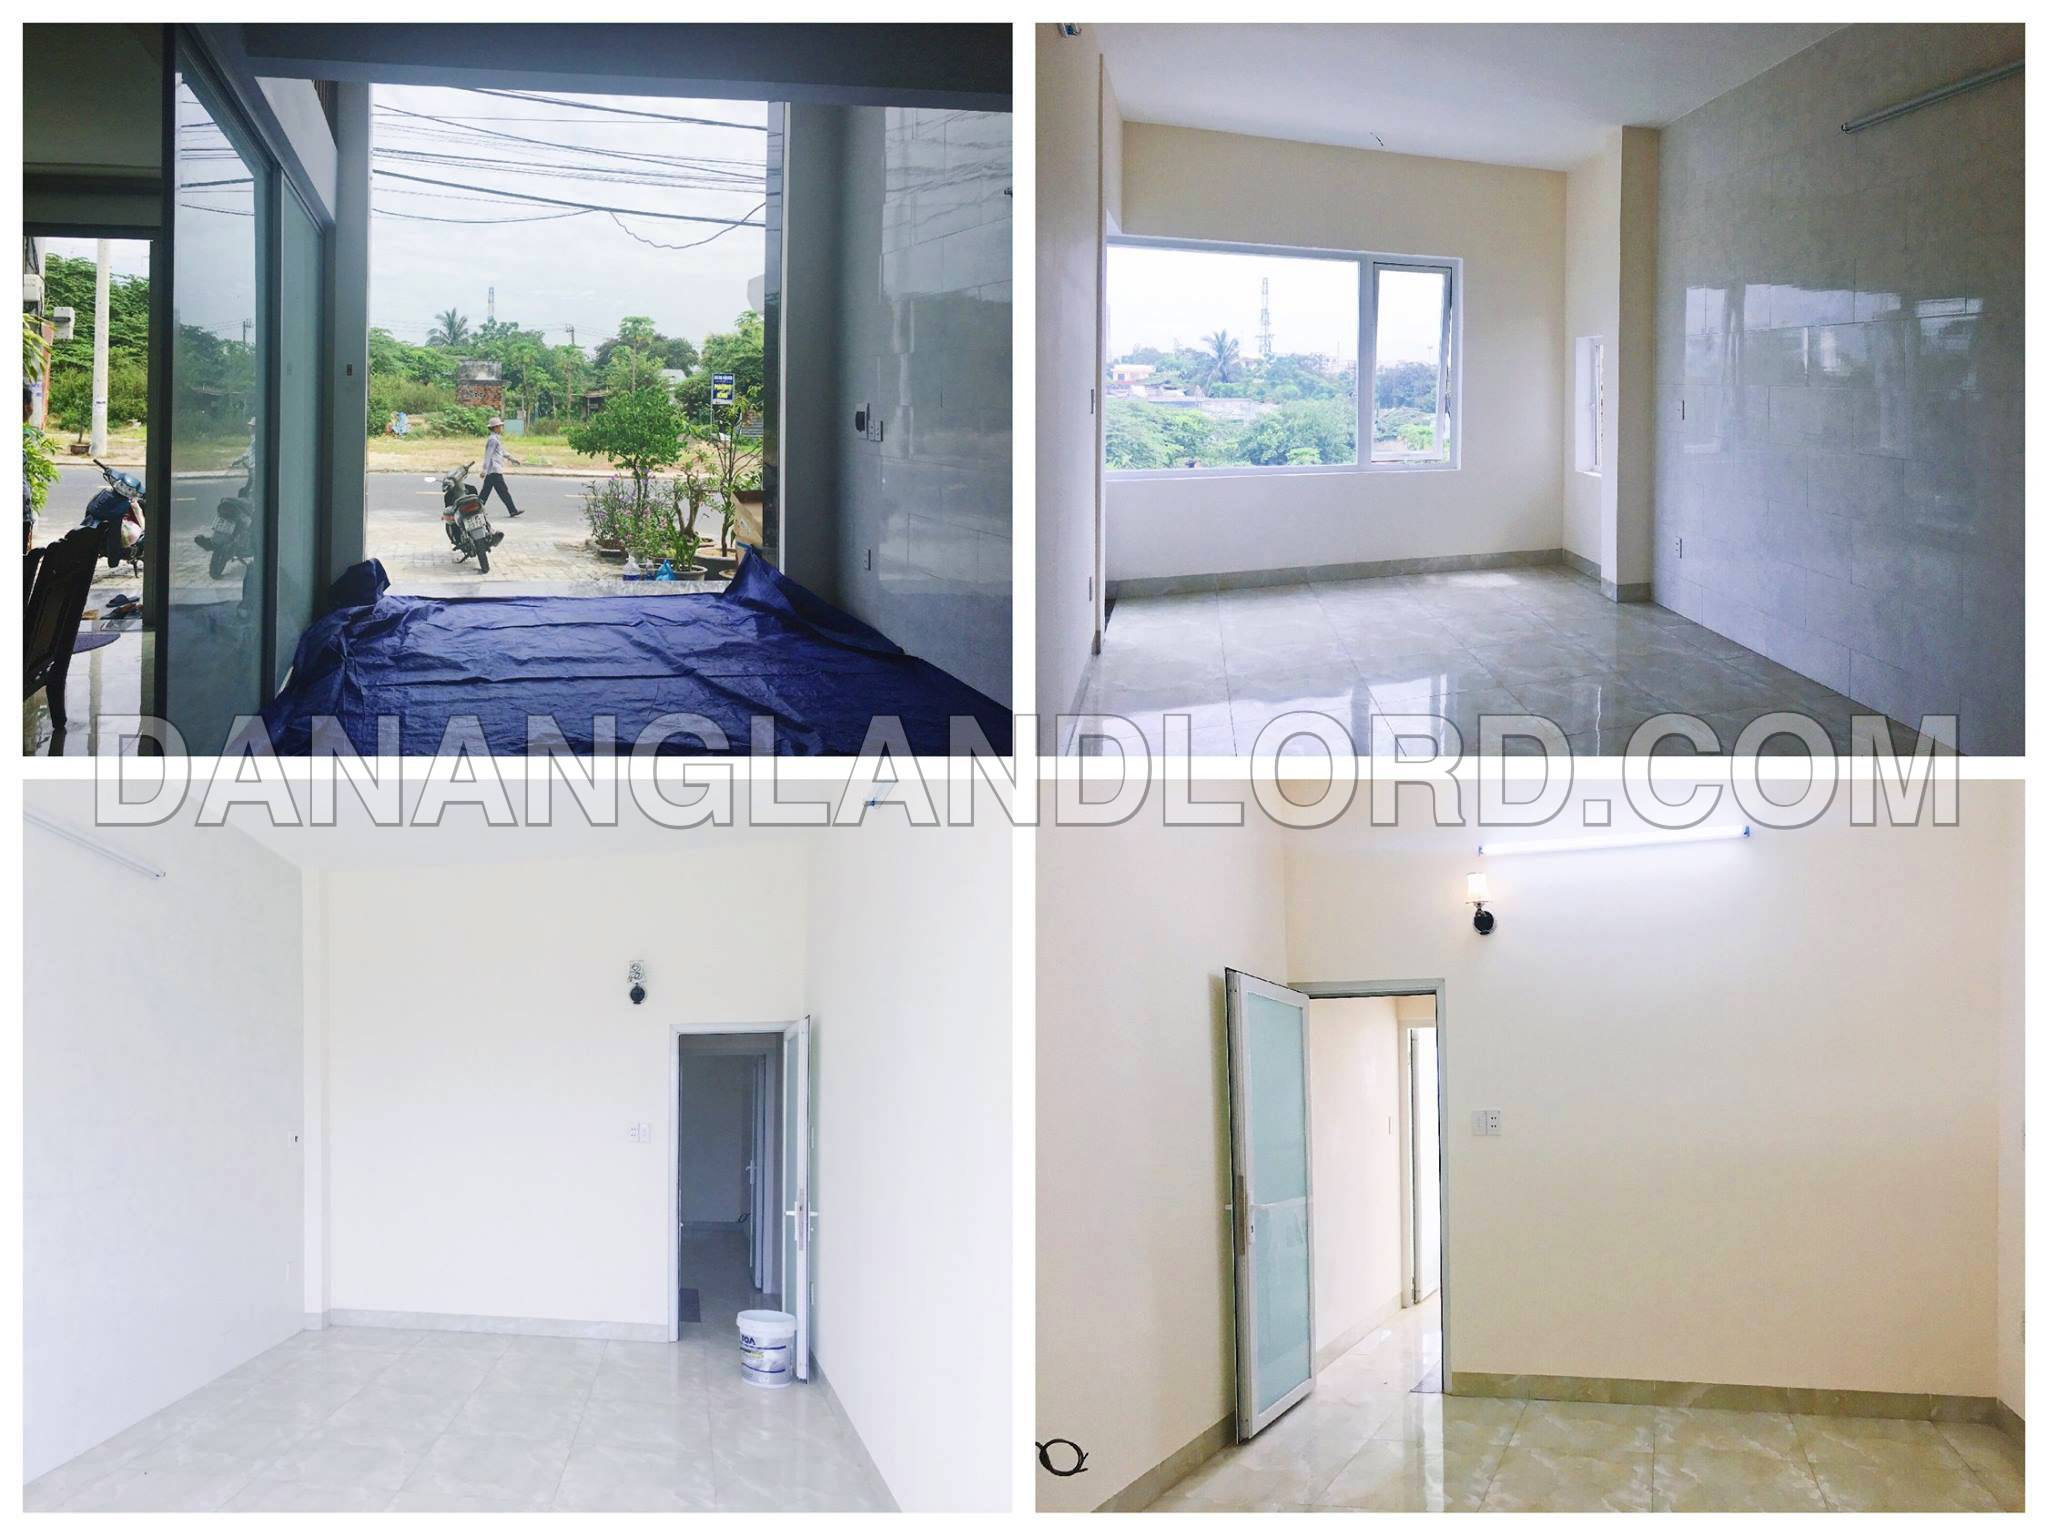 The brand new house with three bedrooms in Ngu Hanh Son District